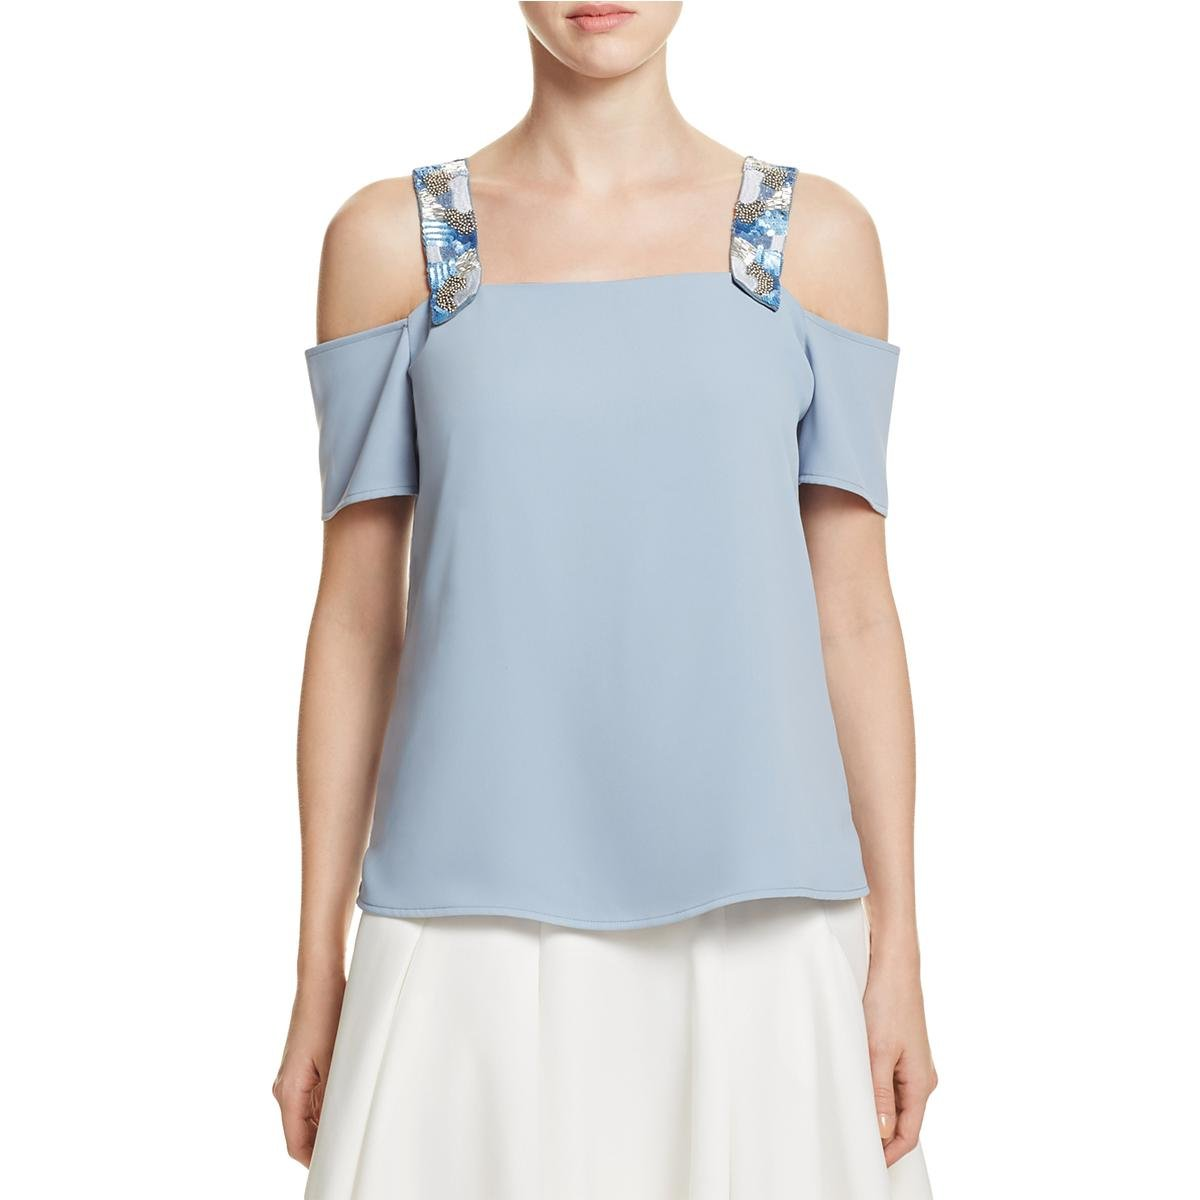 Cooper & Ella Womens Sequined Open Shoulder Blouse Blue XS by Cooper & Ella